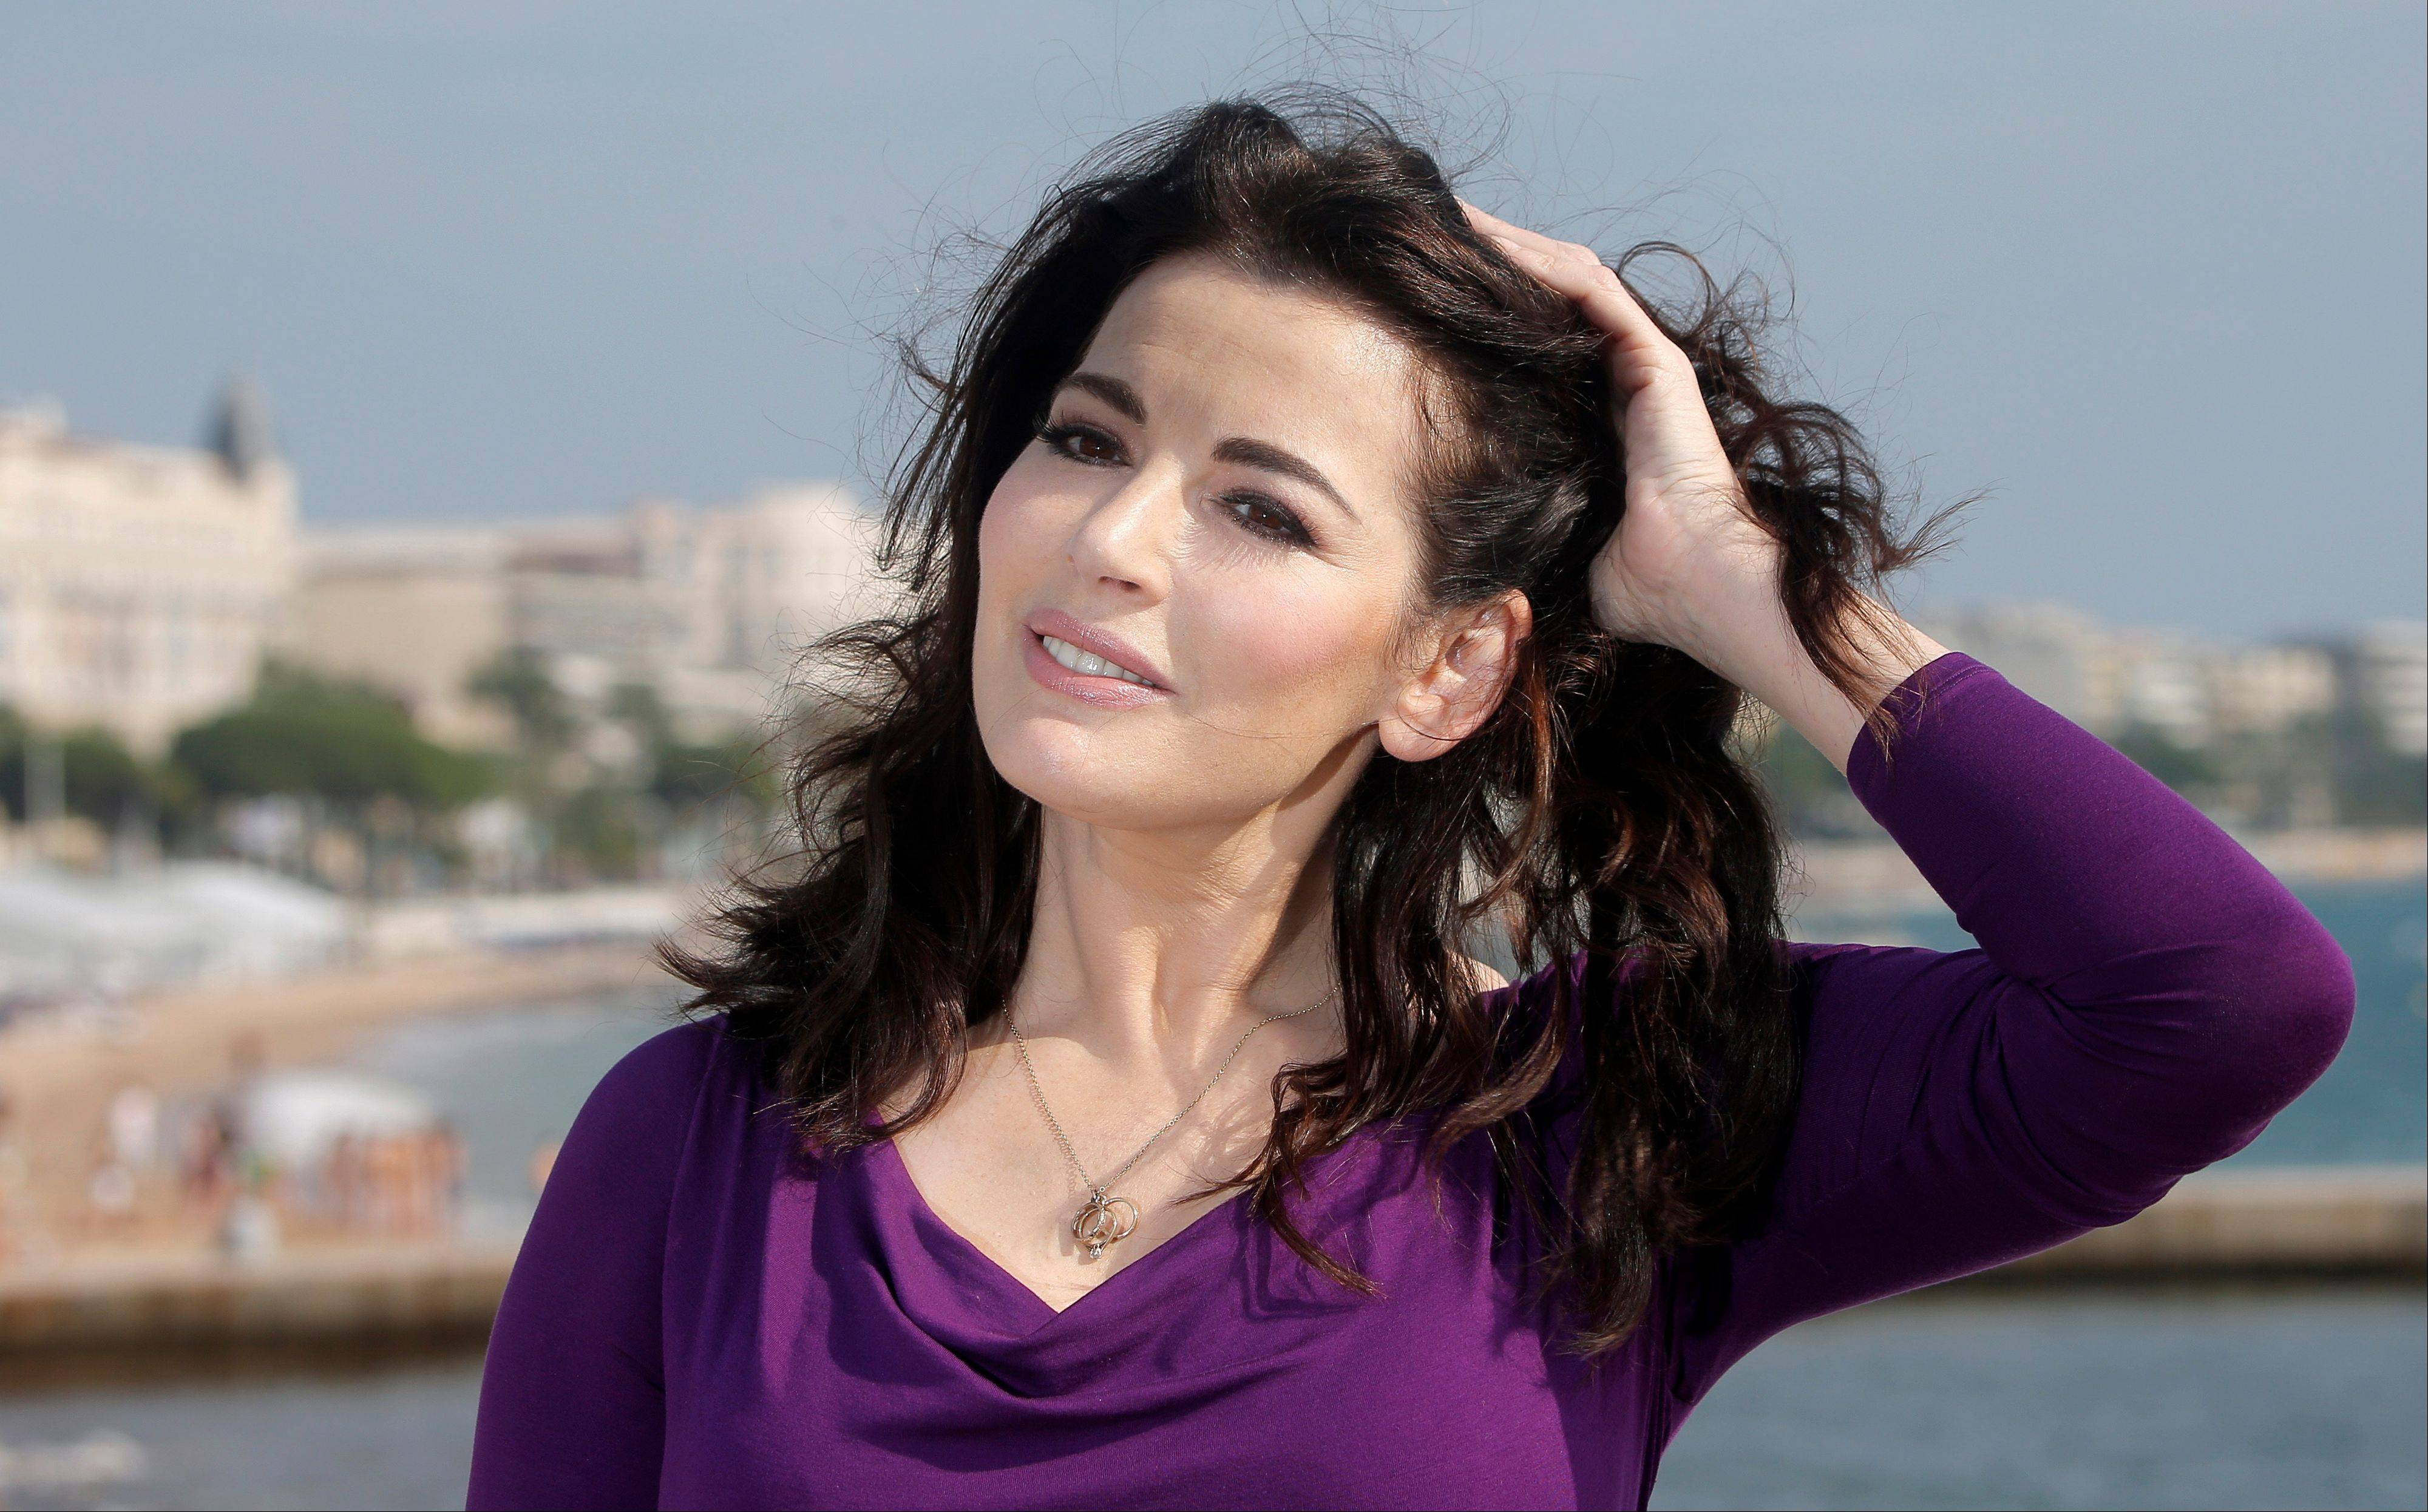 Food writer, journalist and broadcaster Nigella Lawson of Britain poses during the 28th International Film and Programme Market for TV, Video, Cable and Satellite in Cannes, southeastern France. In summer 2013, photos of her husband appearing to choke her surfaced. Then two former employees accused of using the coupleís credit cards for more than $1 million in fraudulent charges claiming she had sanctioned their spending to hush them up about her heavy drug use.